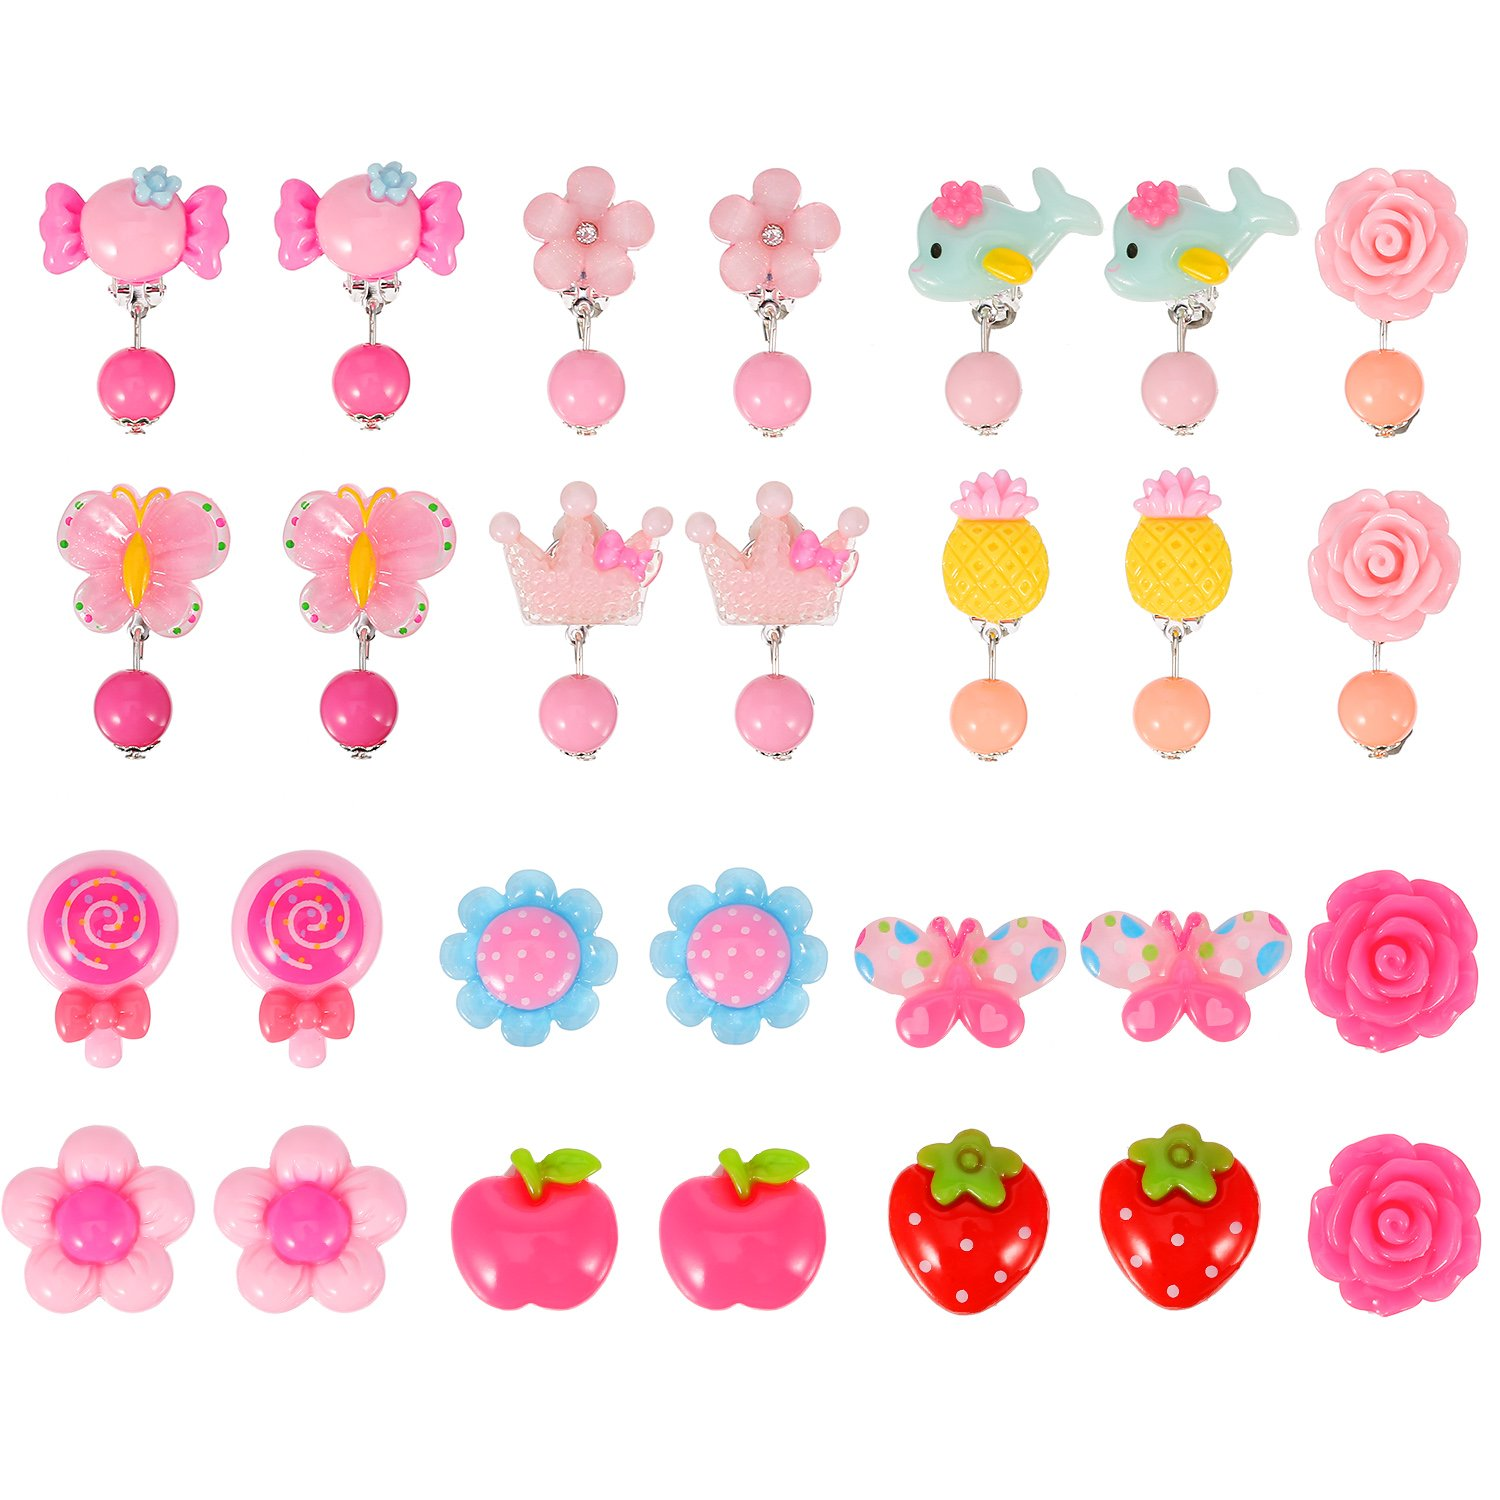 Mtlee 14 Pairs Clip-on Earrings Girls Play Earrings with Different Styles for Party Favor, All Packed in 2 Clear Boxes